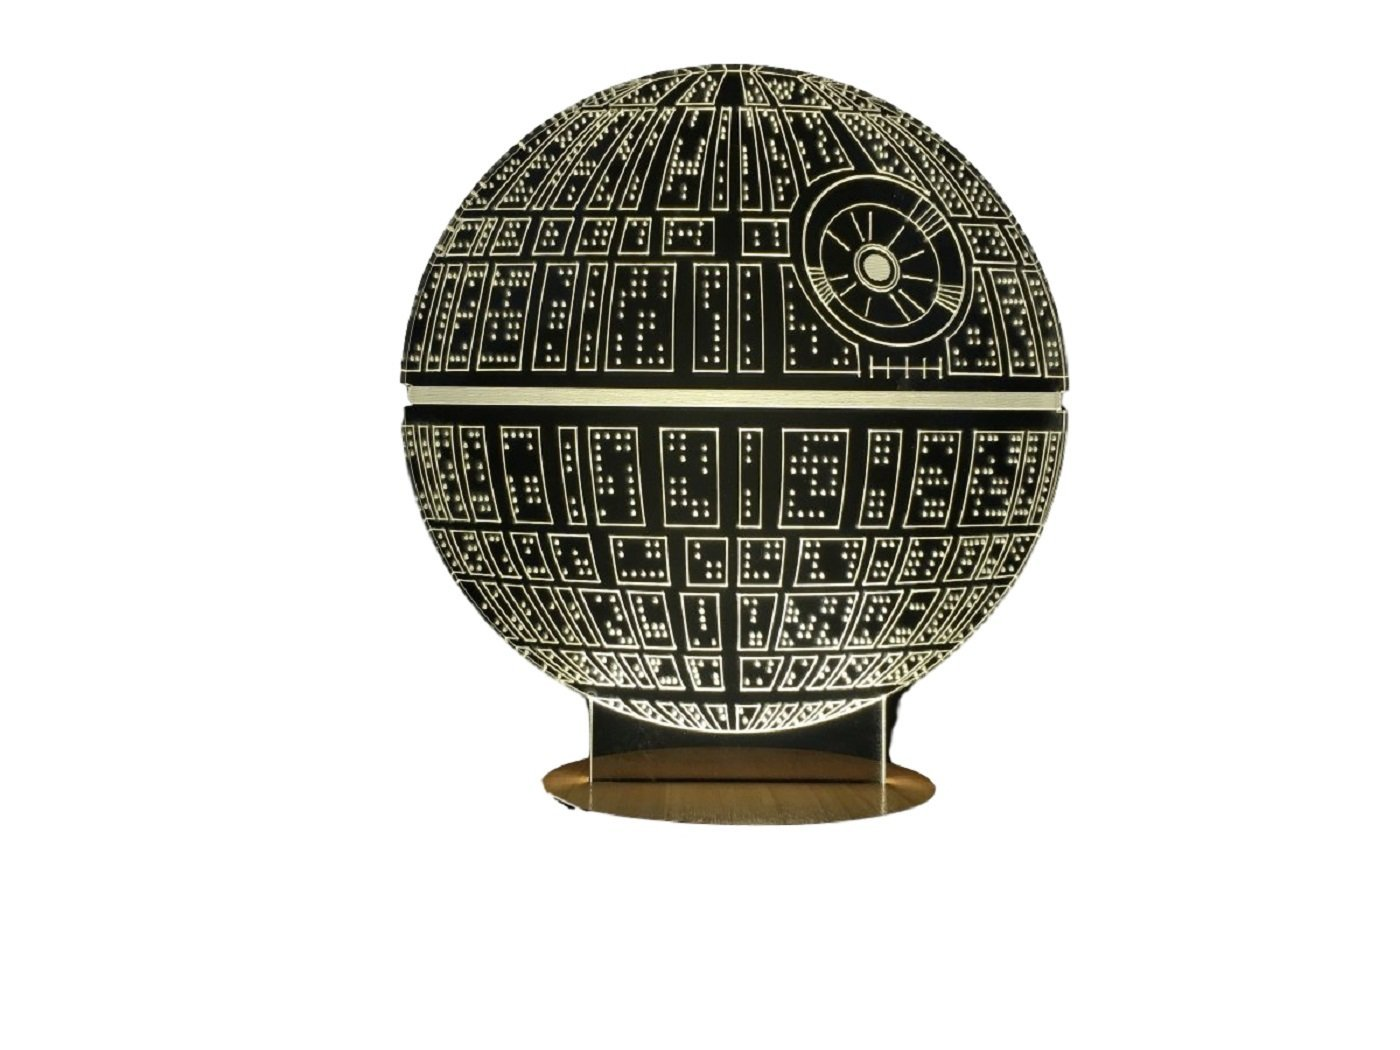 death star 3d light table lamp on amazon star wars action figures. Black Bedroom Furniture Sets. Home Design Ideas